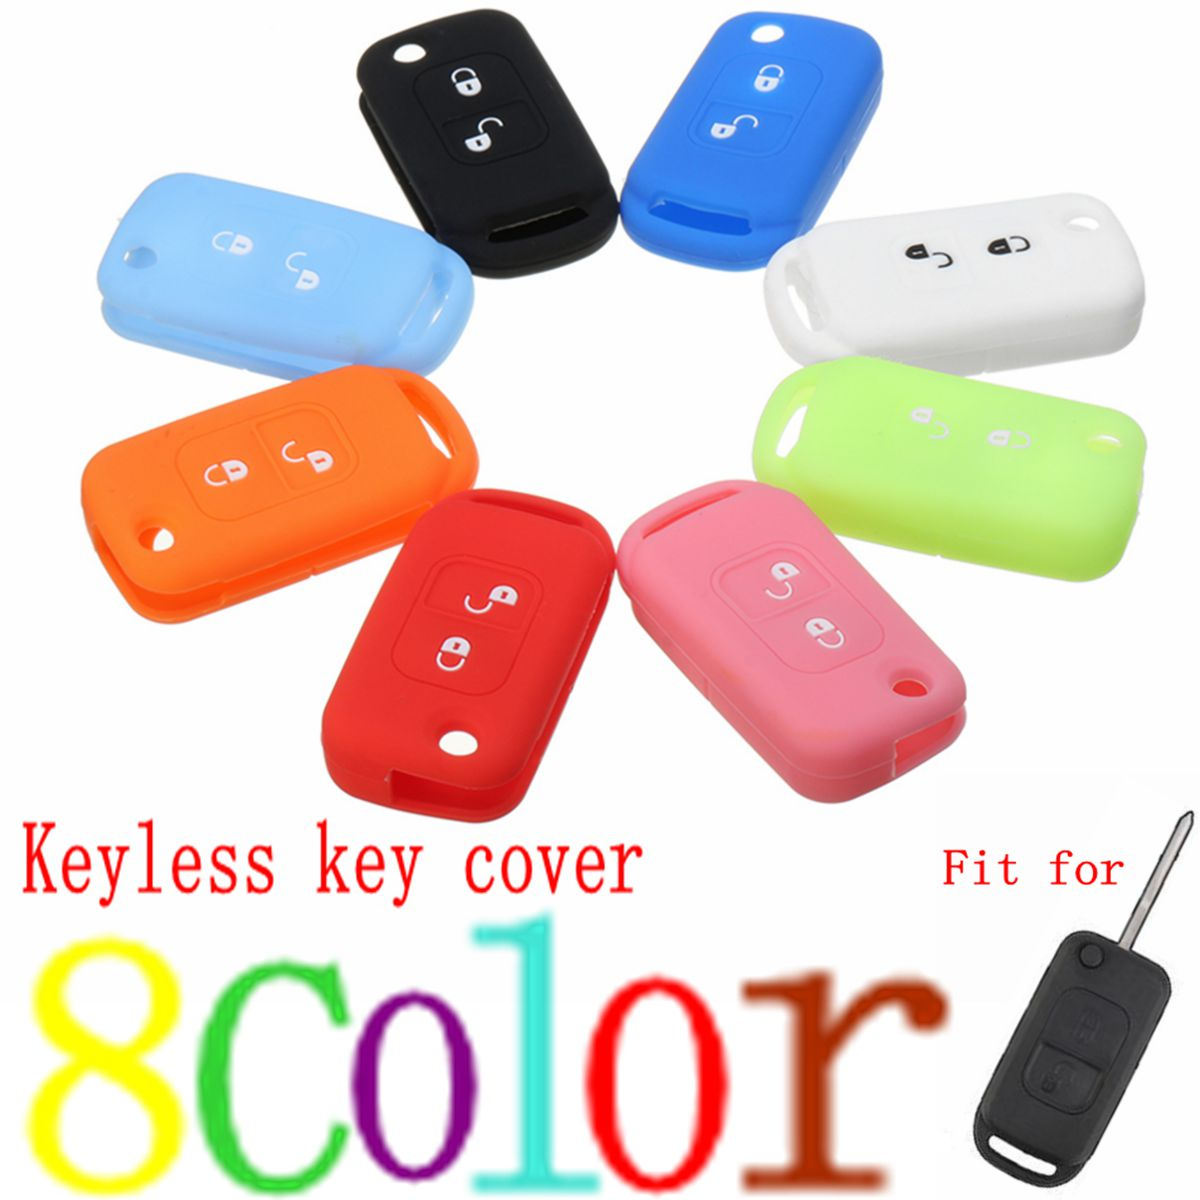 2 Button Silicone Car Key Case Covers Remote Key Cover Case For Mercedes -Benz A C E S W168 W202 W203